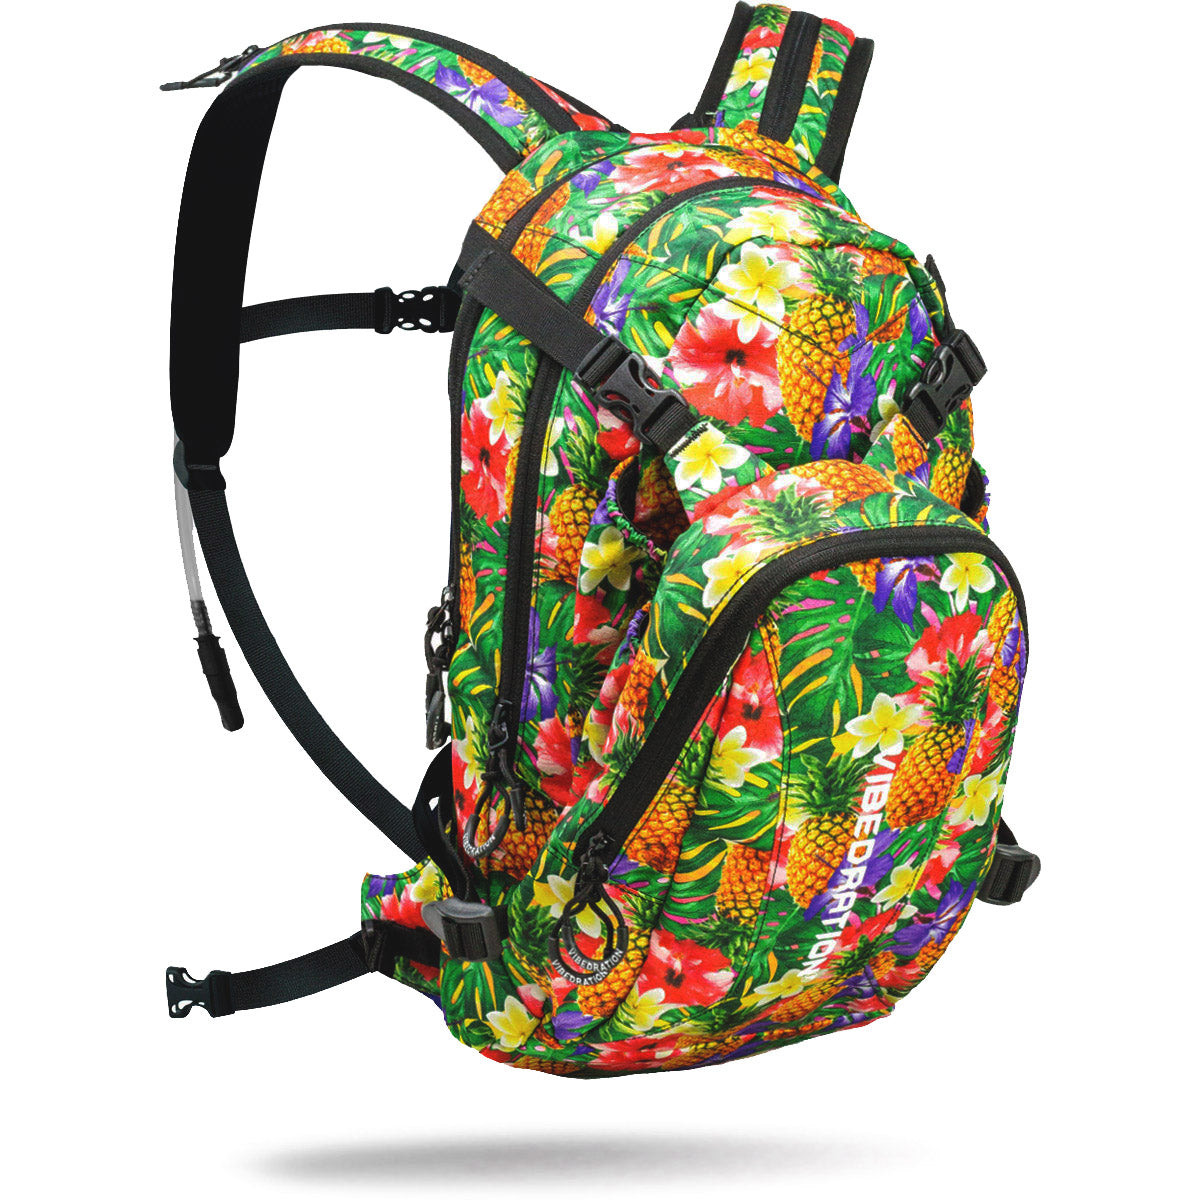 Hawaiian Three Liter Hydration Pack for Camping and Hiking